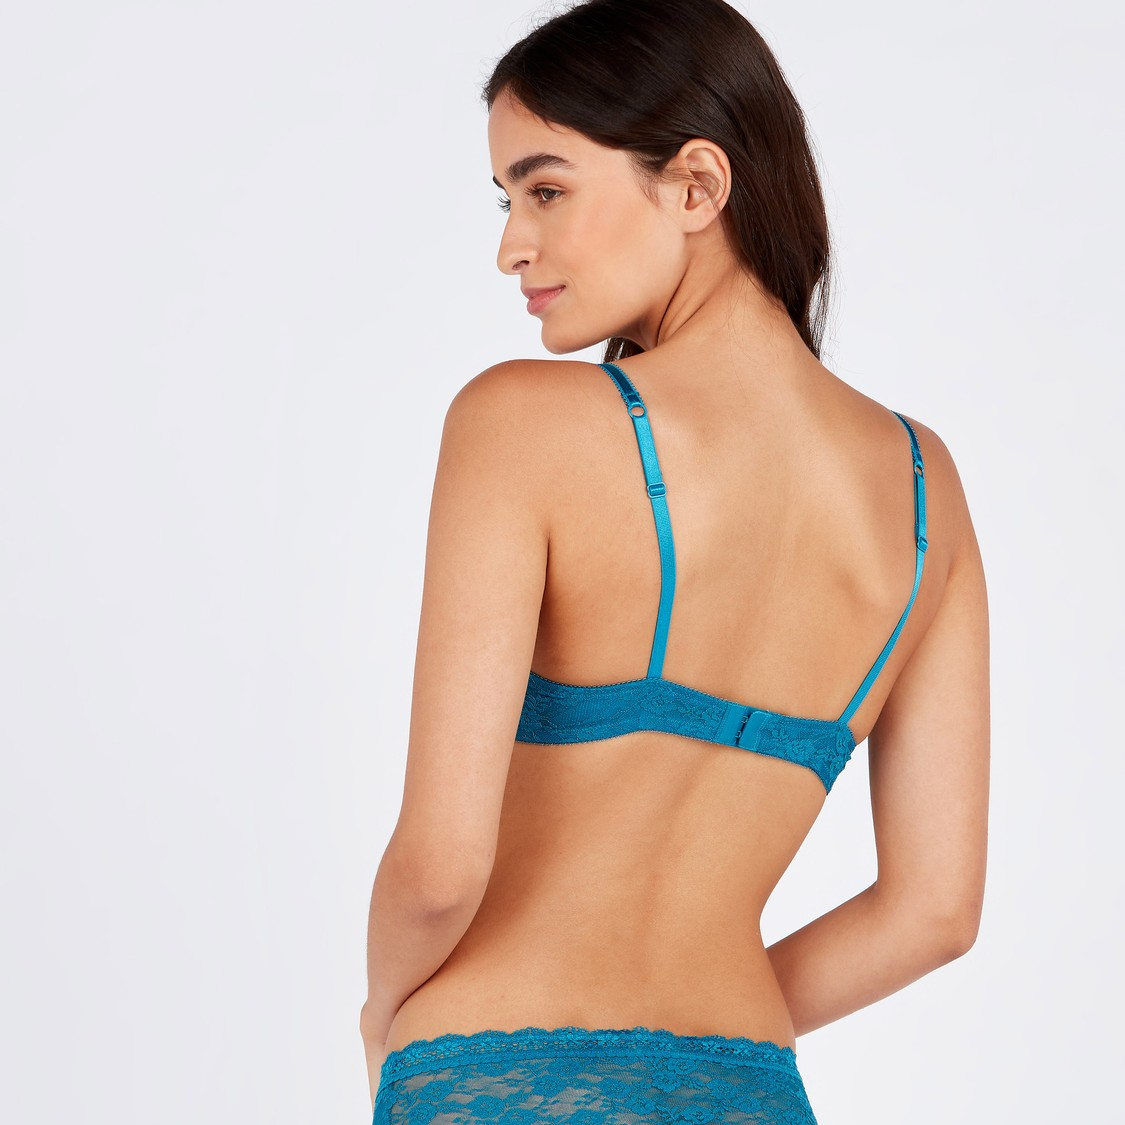 Lace Detail Padded Wired Plunge Bra with Adjustable Shoulder Straps